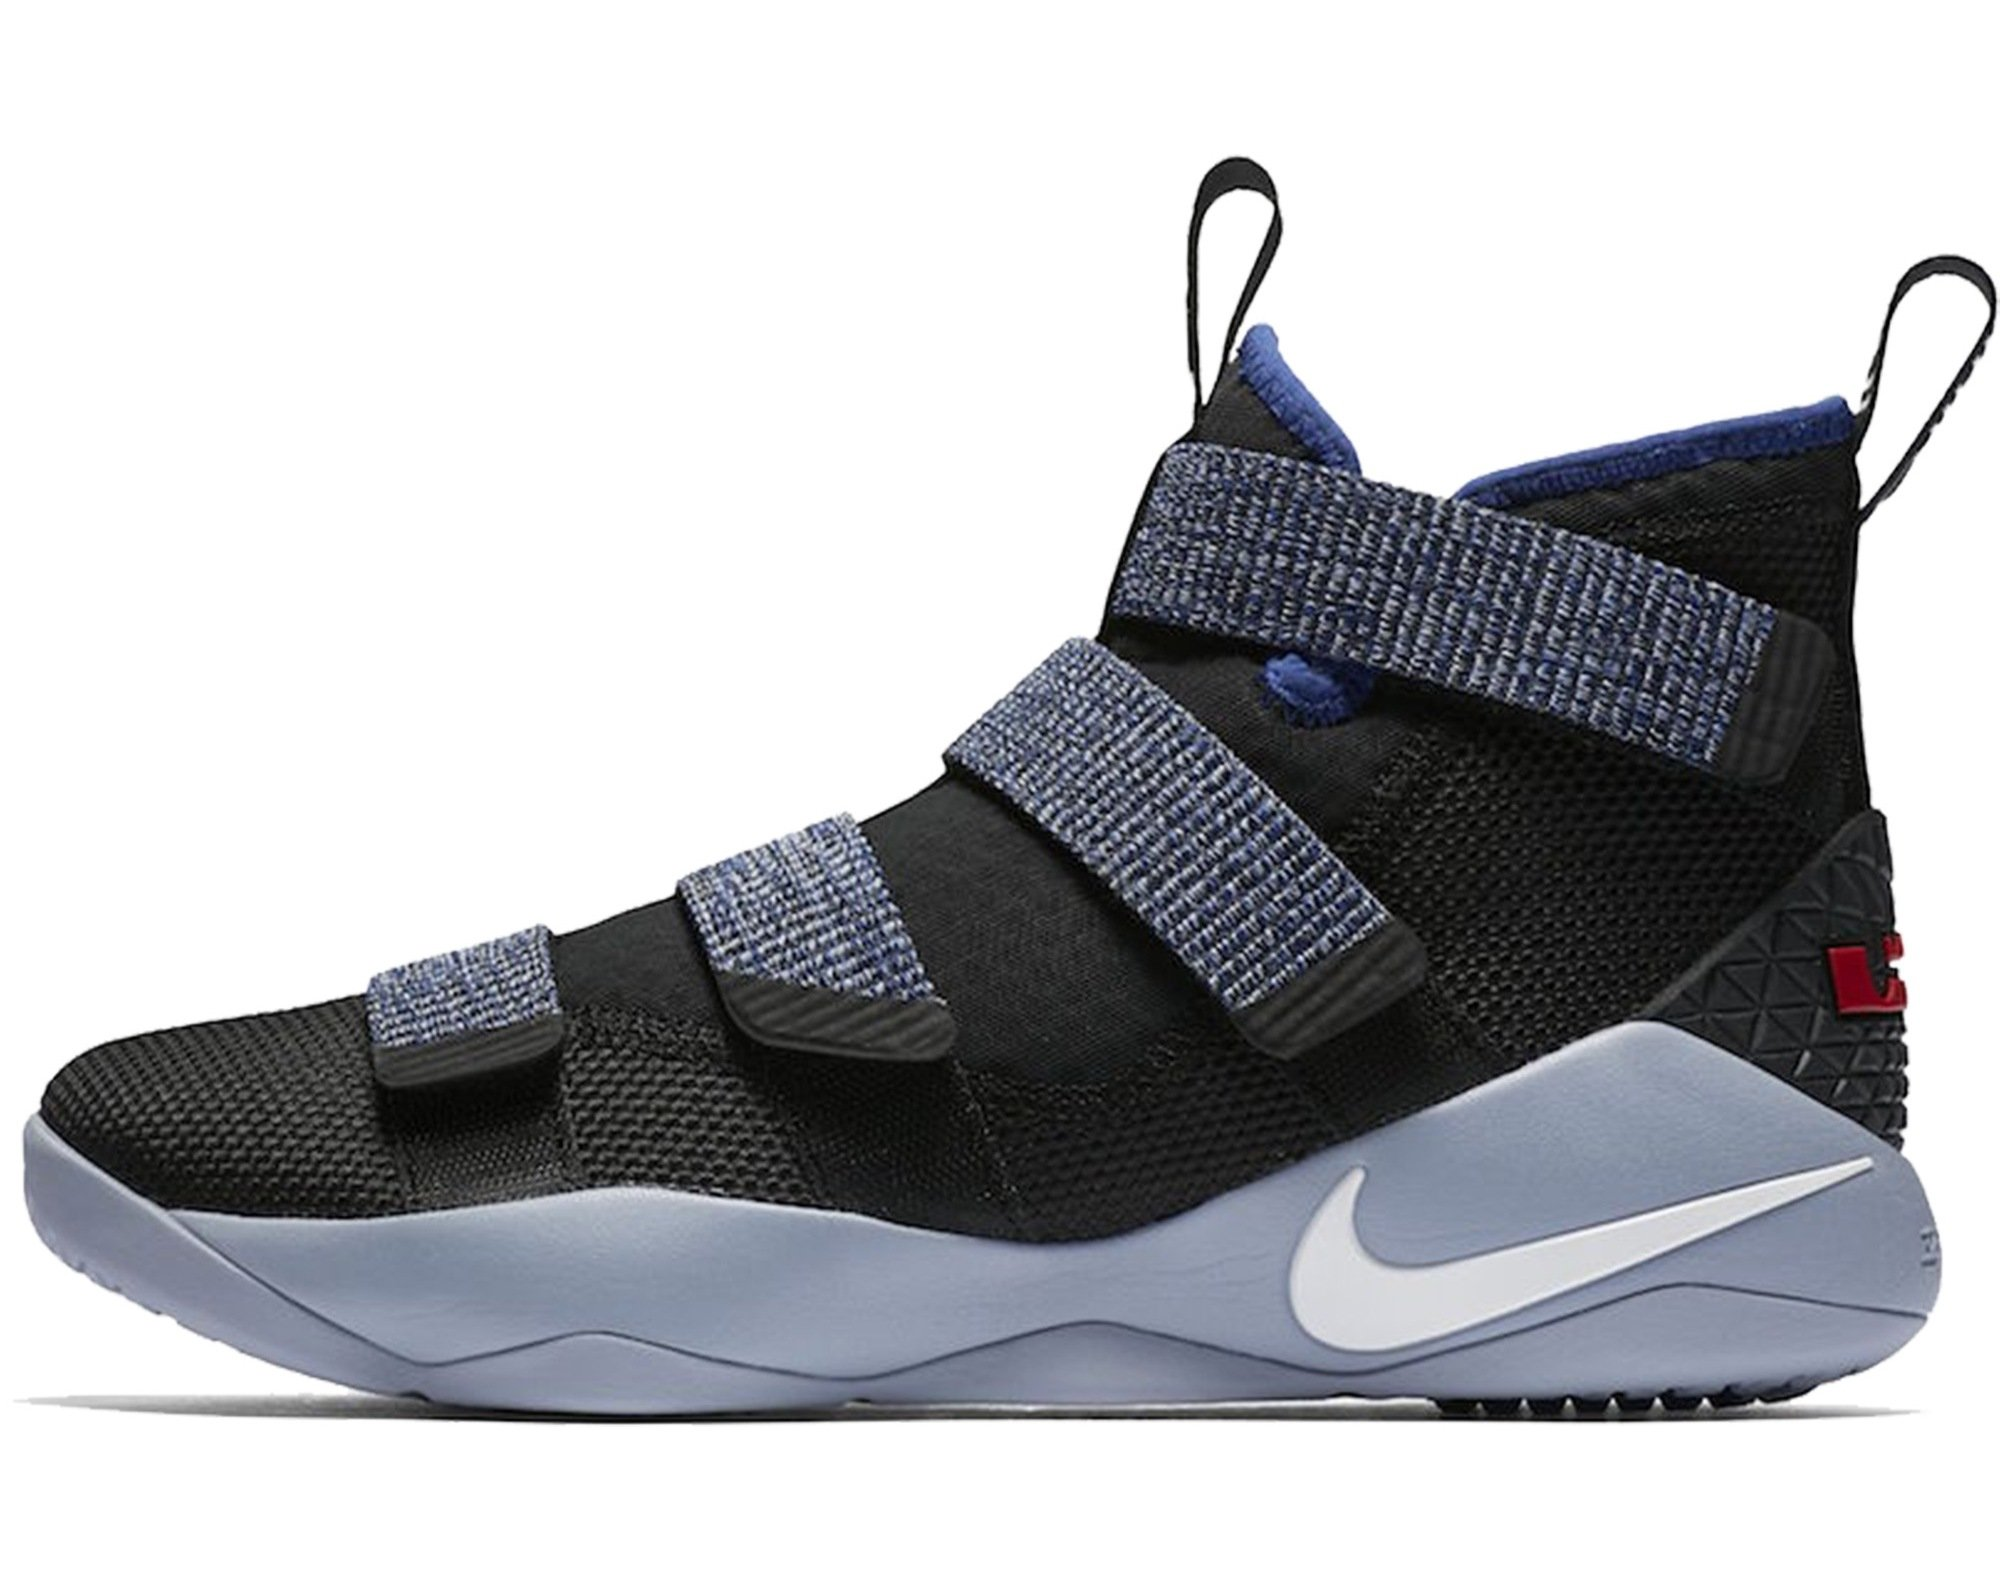 quality design bdefe 341e0 Nike Lebron Soldier XI 11 Little Kids Youth P.S Glacier Grey/Deep Royal  Blue 918368-005 (1)